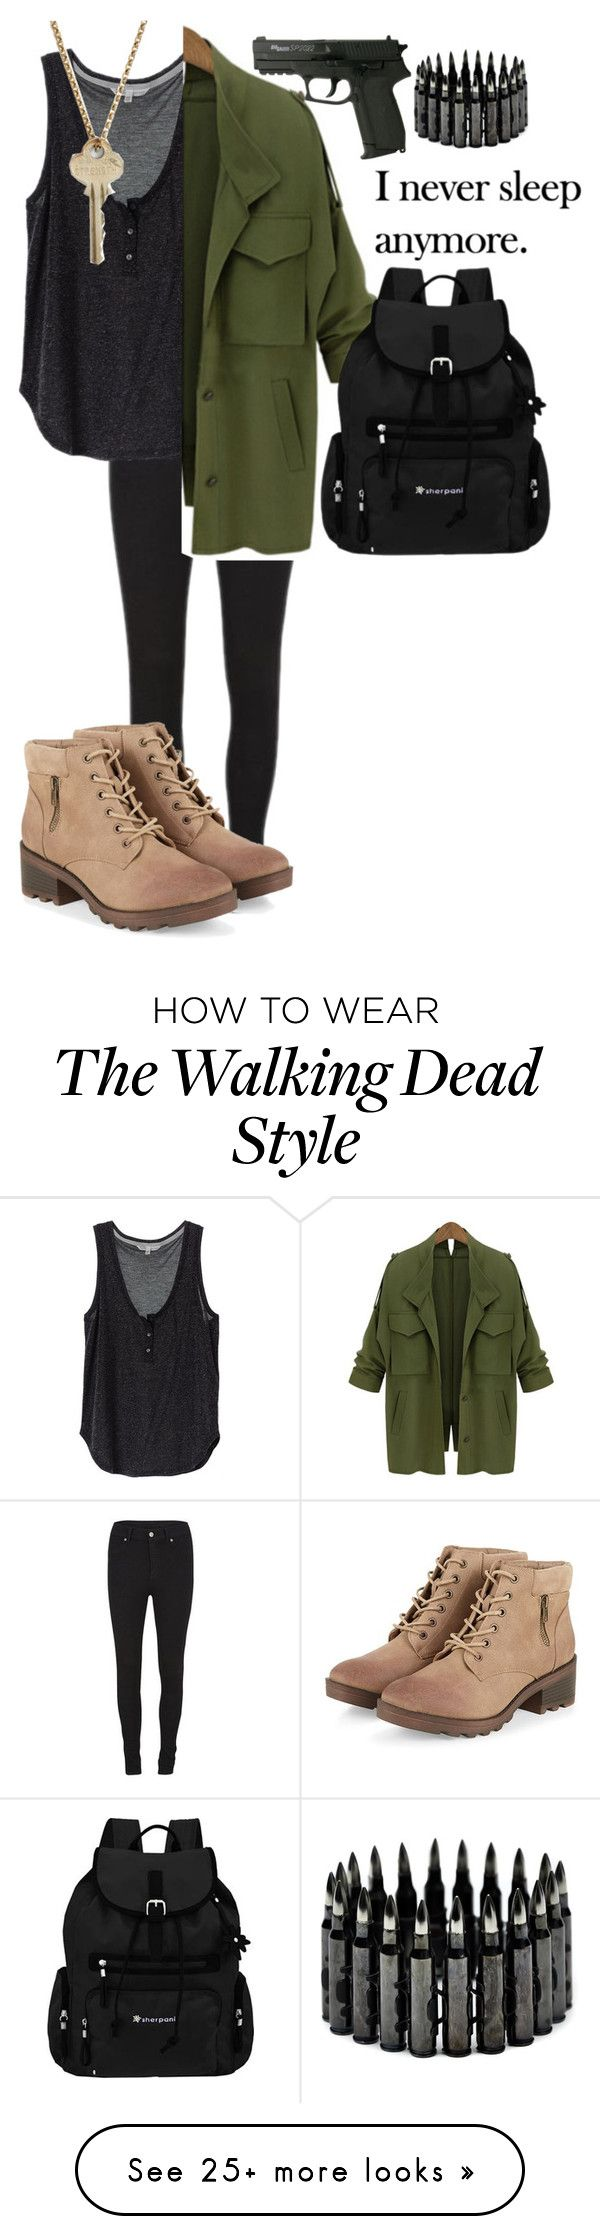 """Walking dead look"" by boobear1707 on Polyvore featuring Cheap Monday, The Giving Keys and Sherpani"